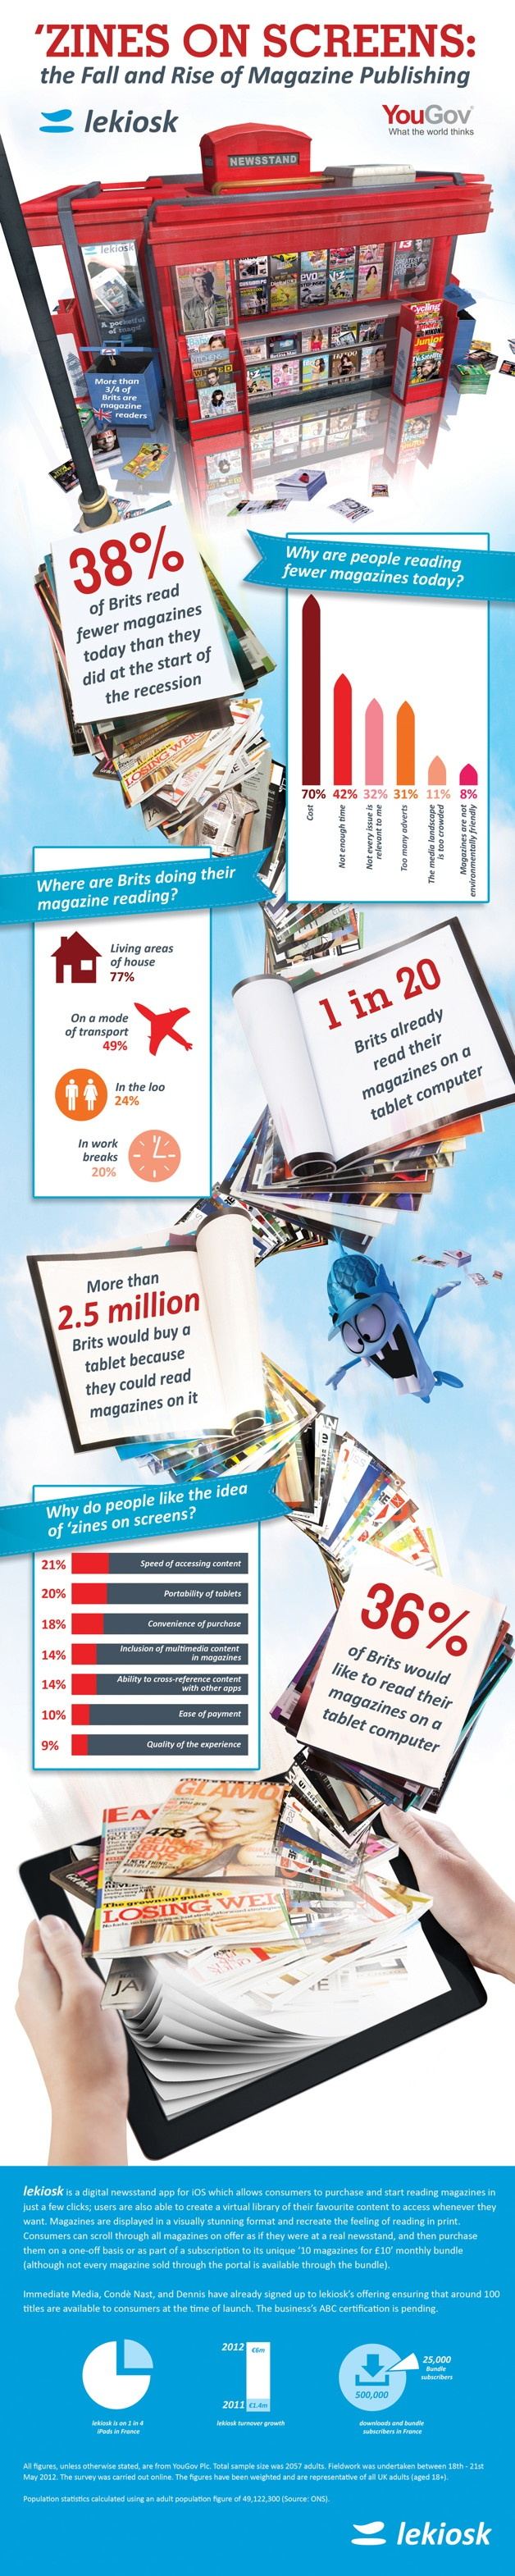 INFOGRAPHIC: 2.5m Brits would buy a tablet to read e-mags | Mobile content industry news | Mobile Entertainment